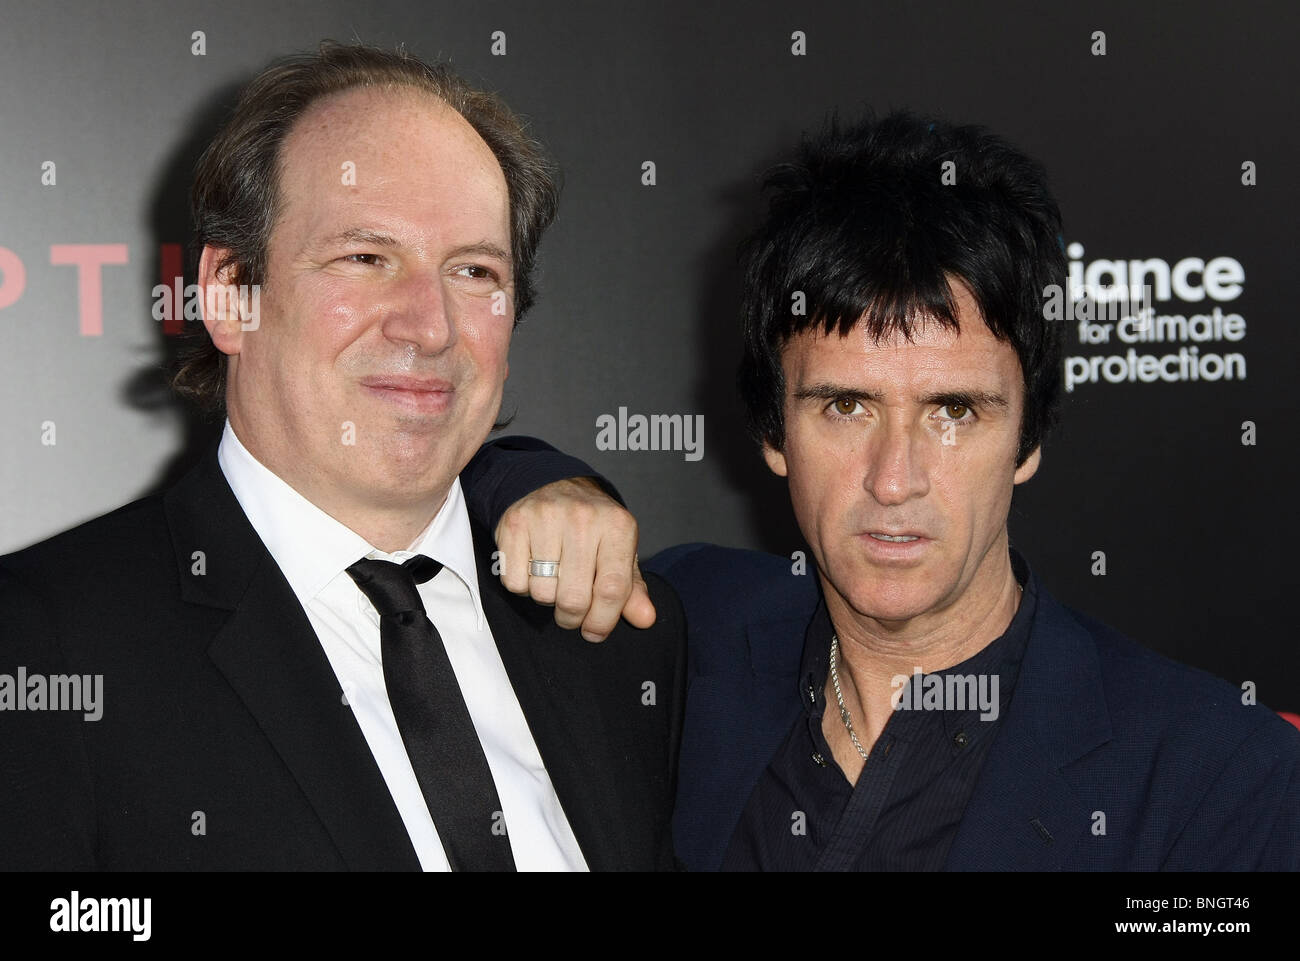 HANS ZIMMER JOHNNY MARR INCEPTION LOS ANGELES PREMIERE LOS ANGELES CALIFORNIA USA 13 July 2010 - Stock Image